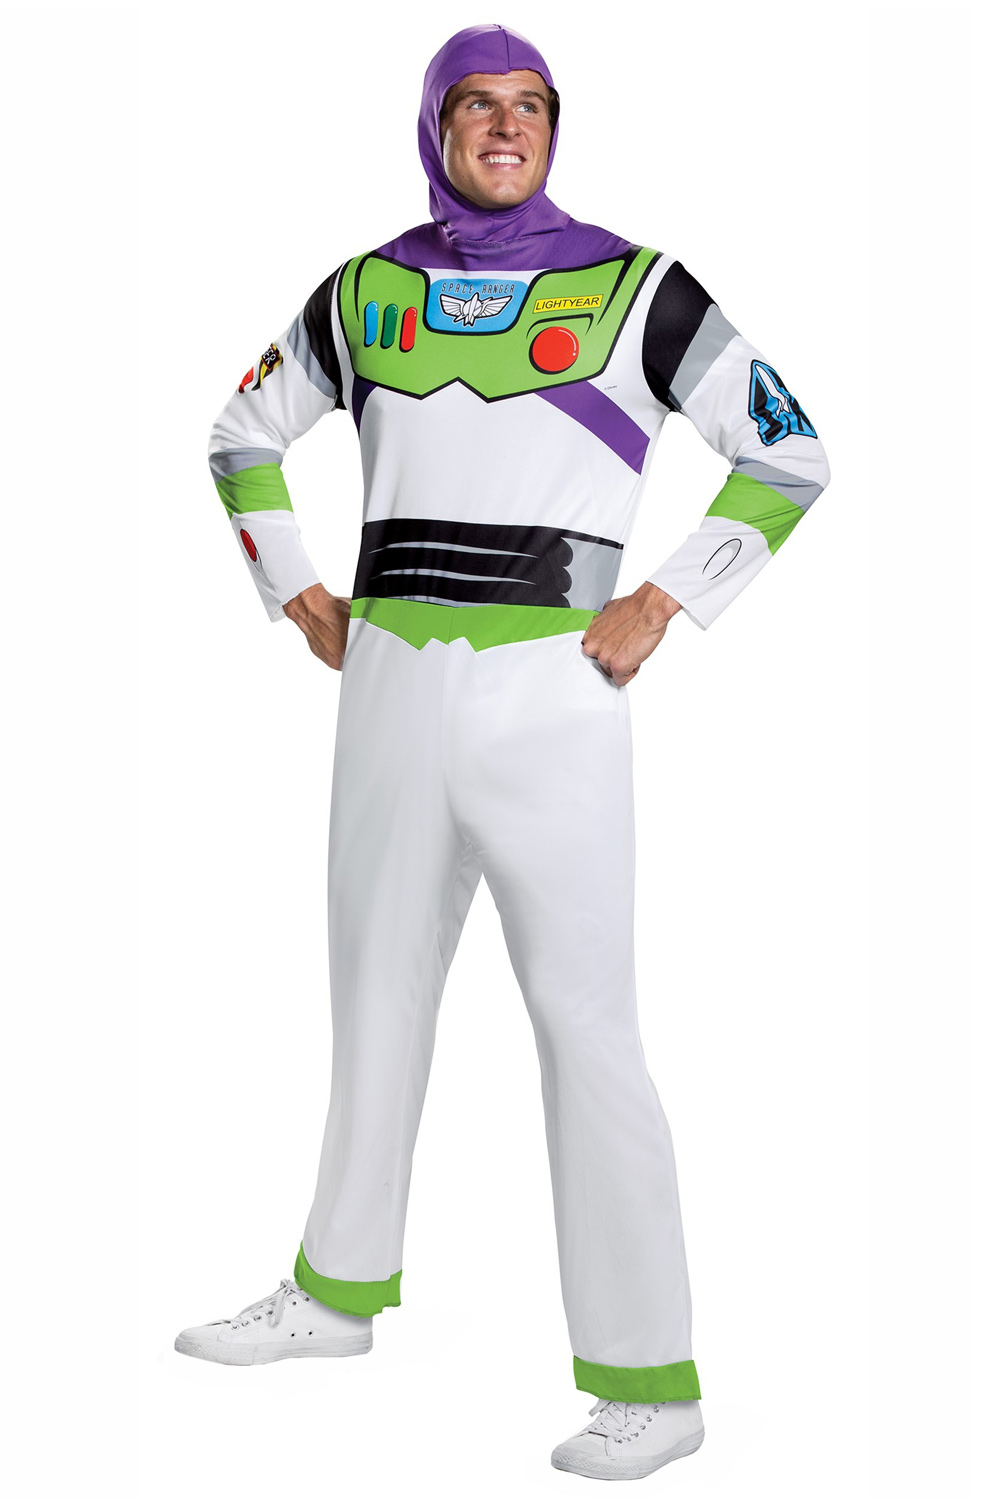 Buzz Lightyear Costume Adult 52